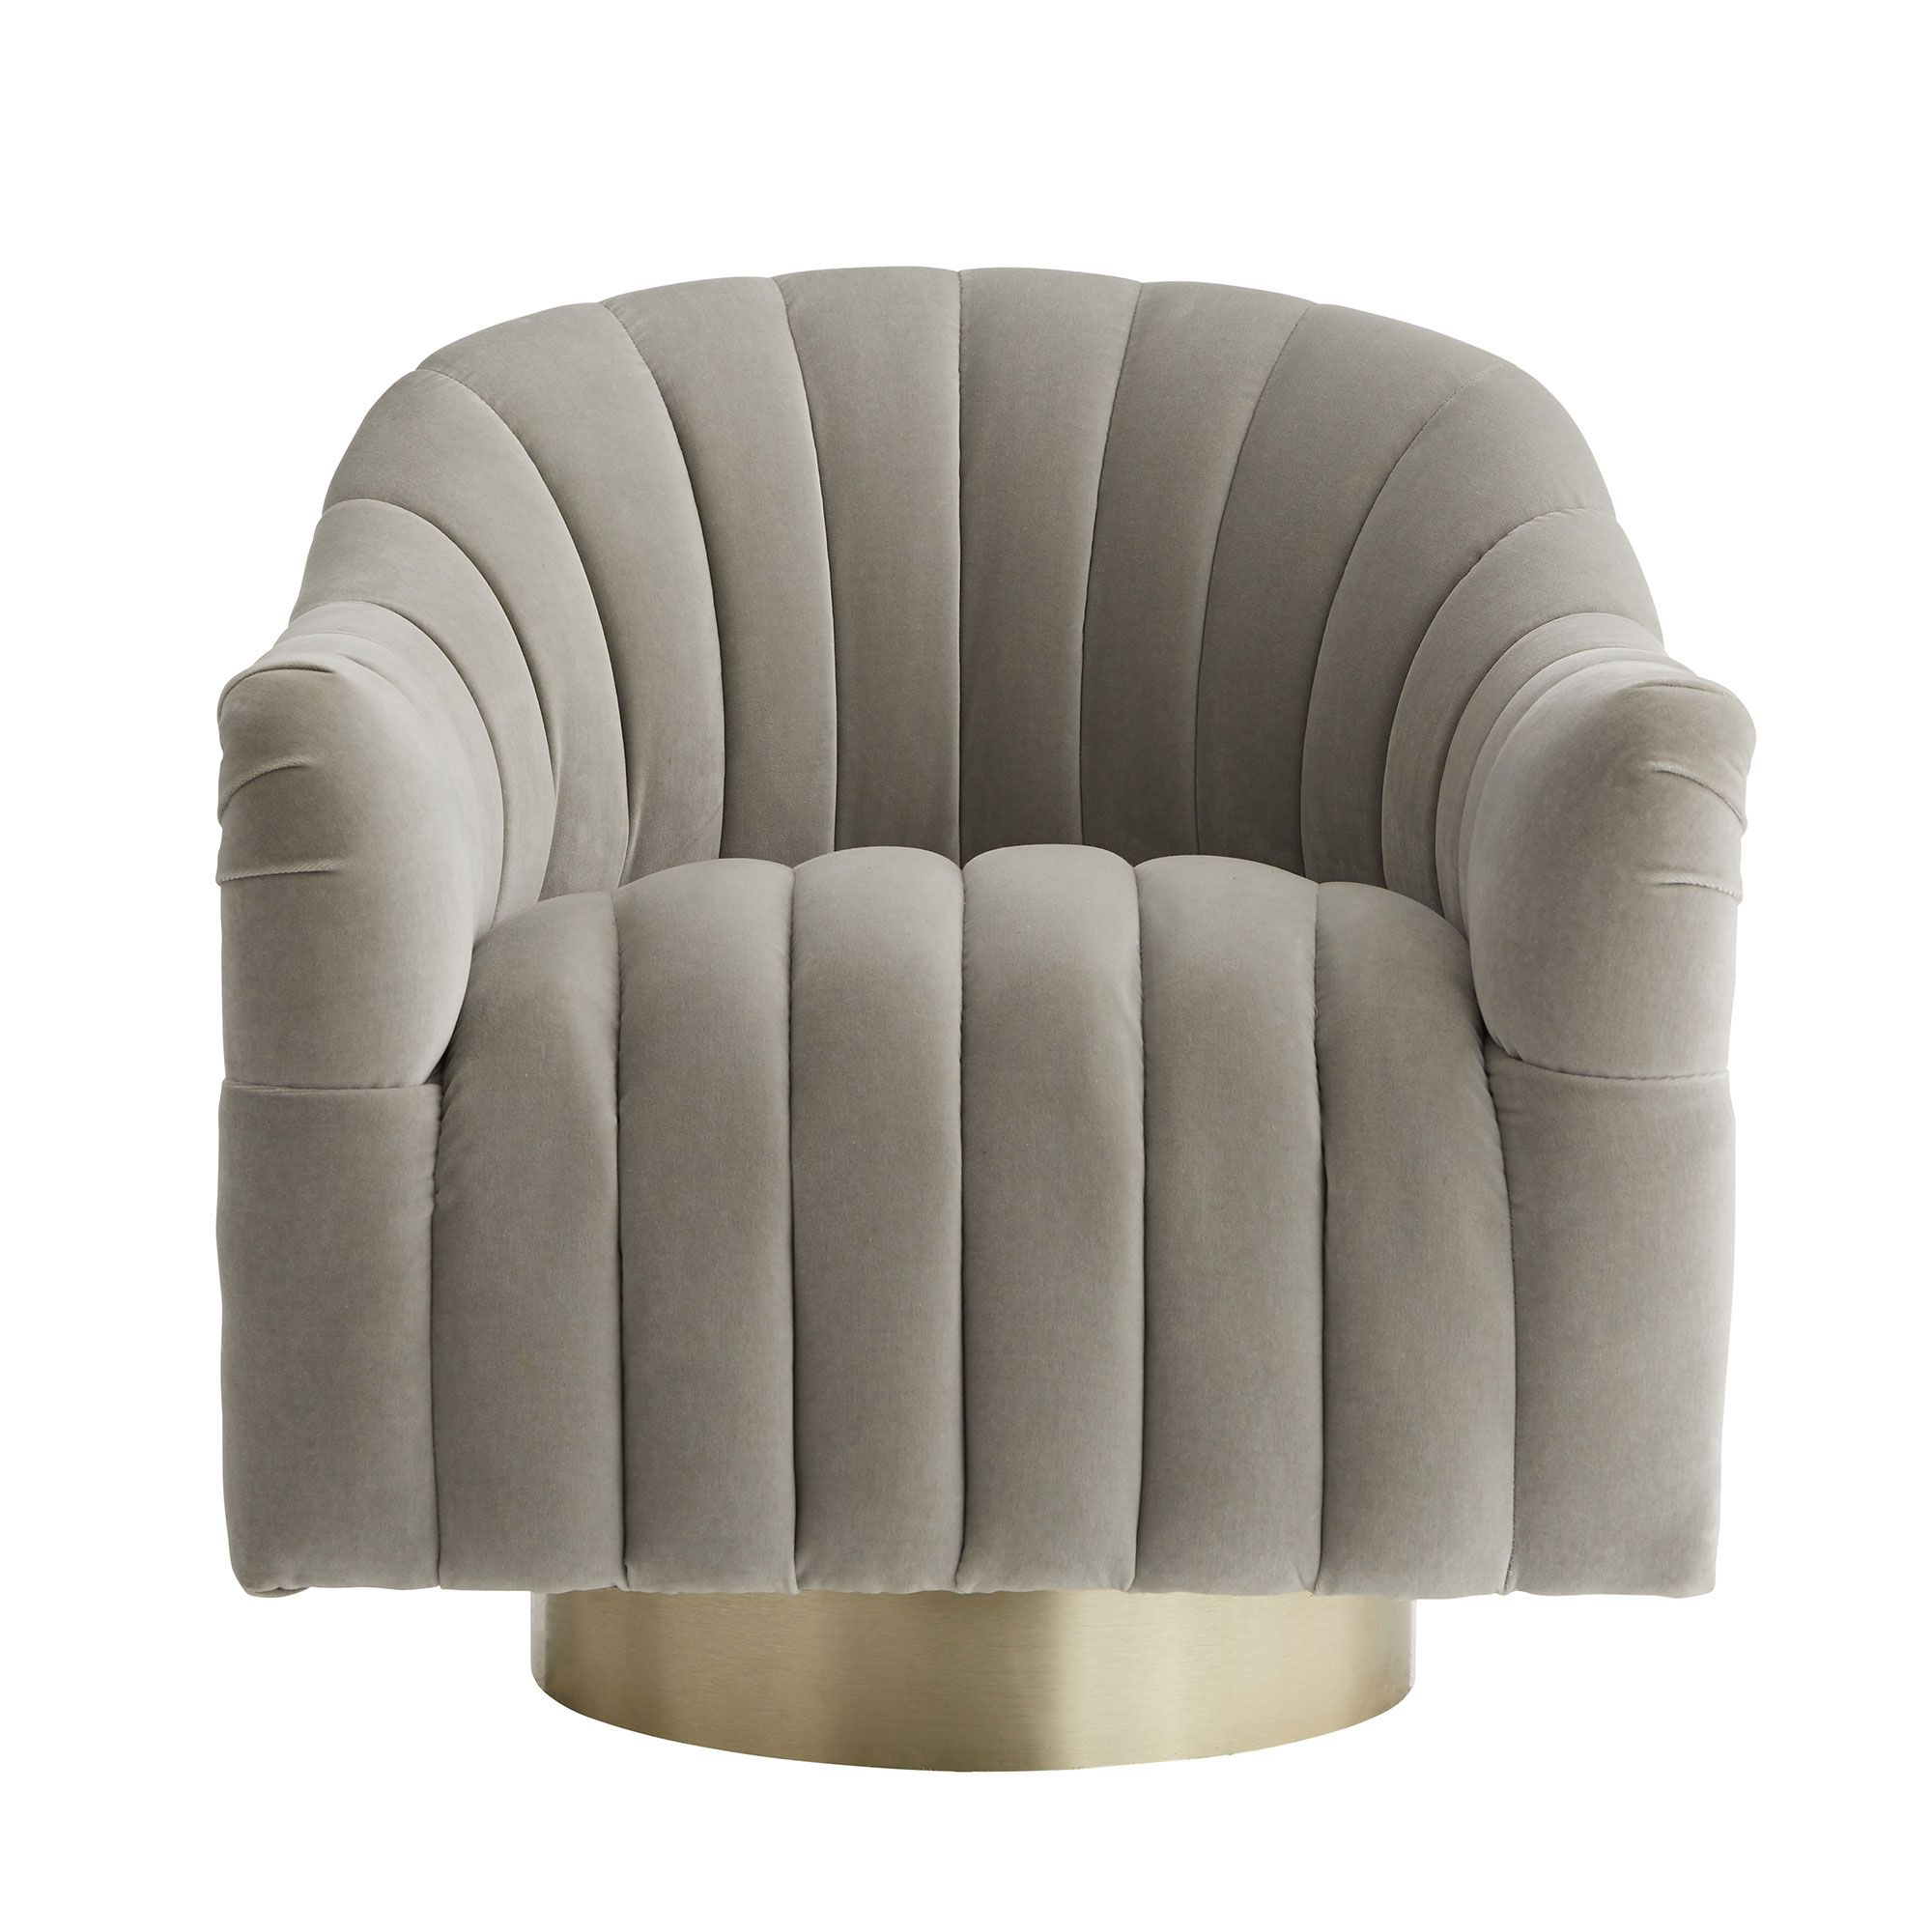 Springsteen Chair Flint Velvet Champagne Swivel